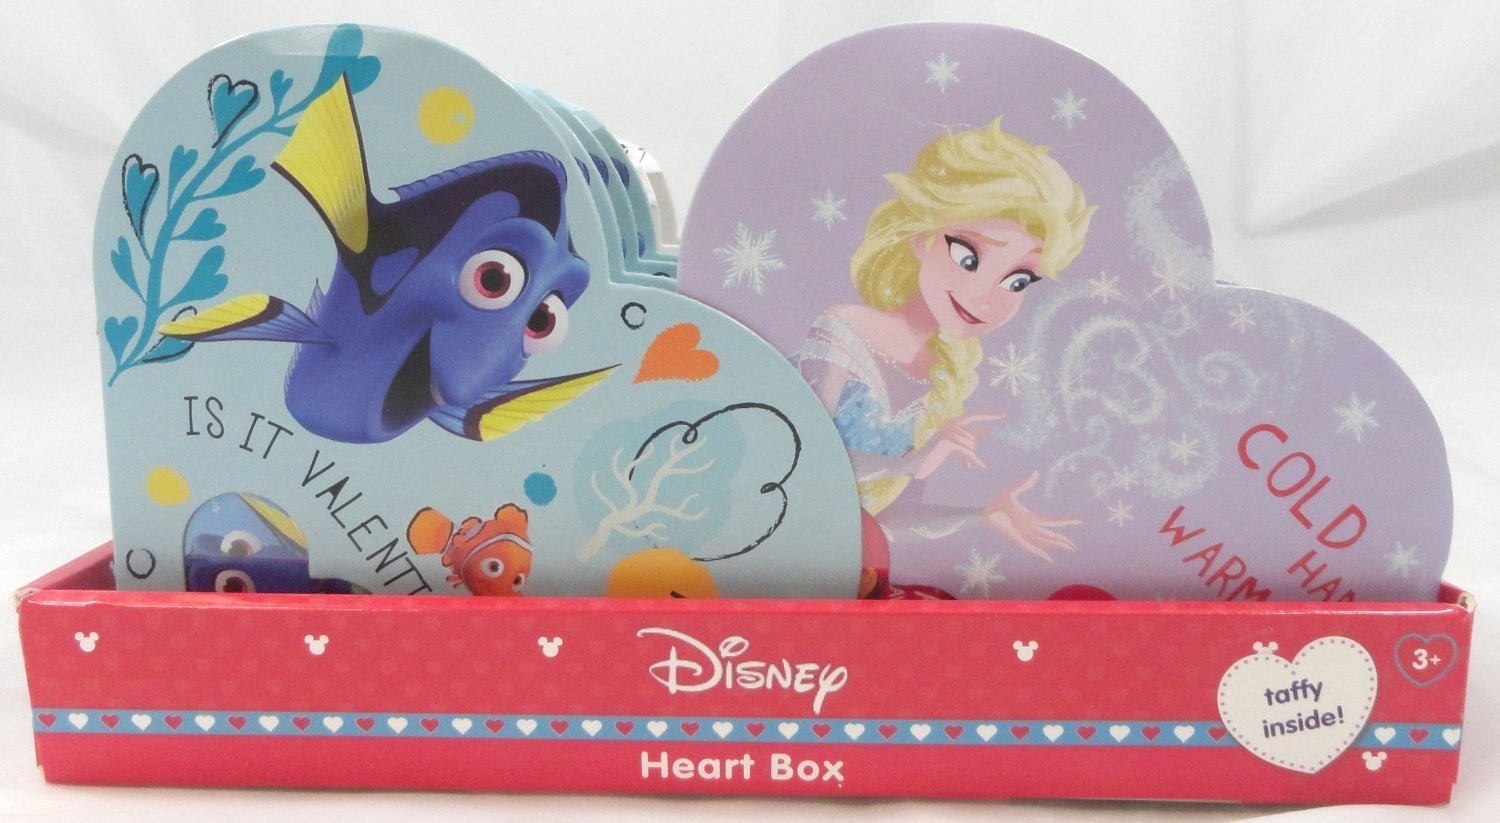 Disney Assorted Taffy Small Heart Box - Finding Dory, Frozen, Mickey